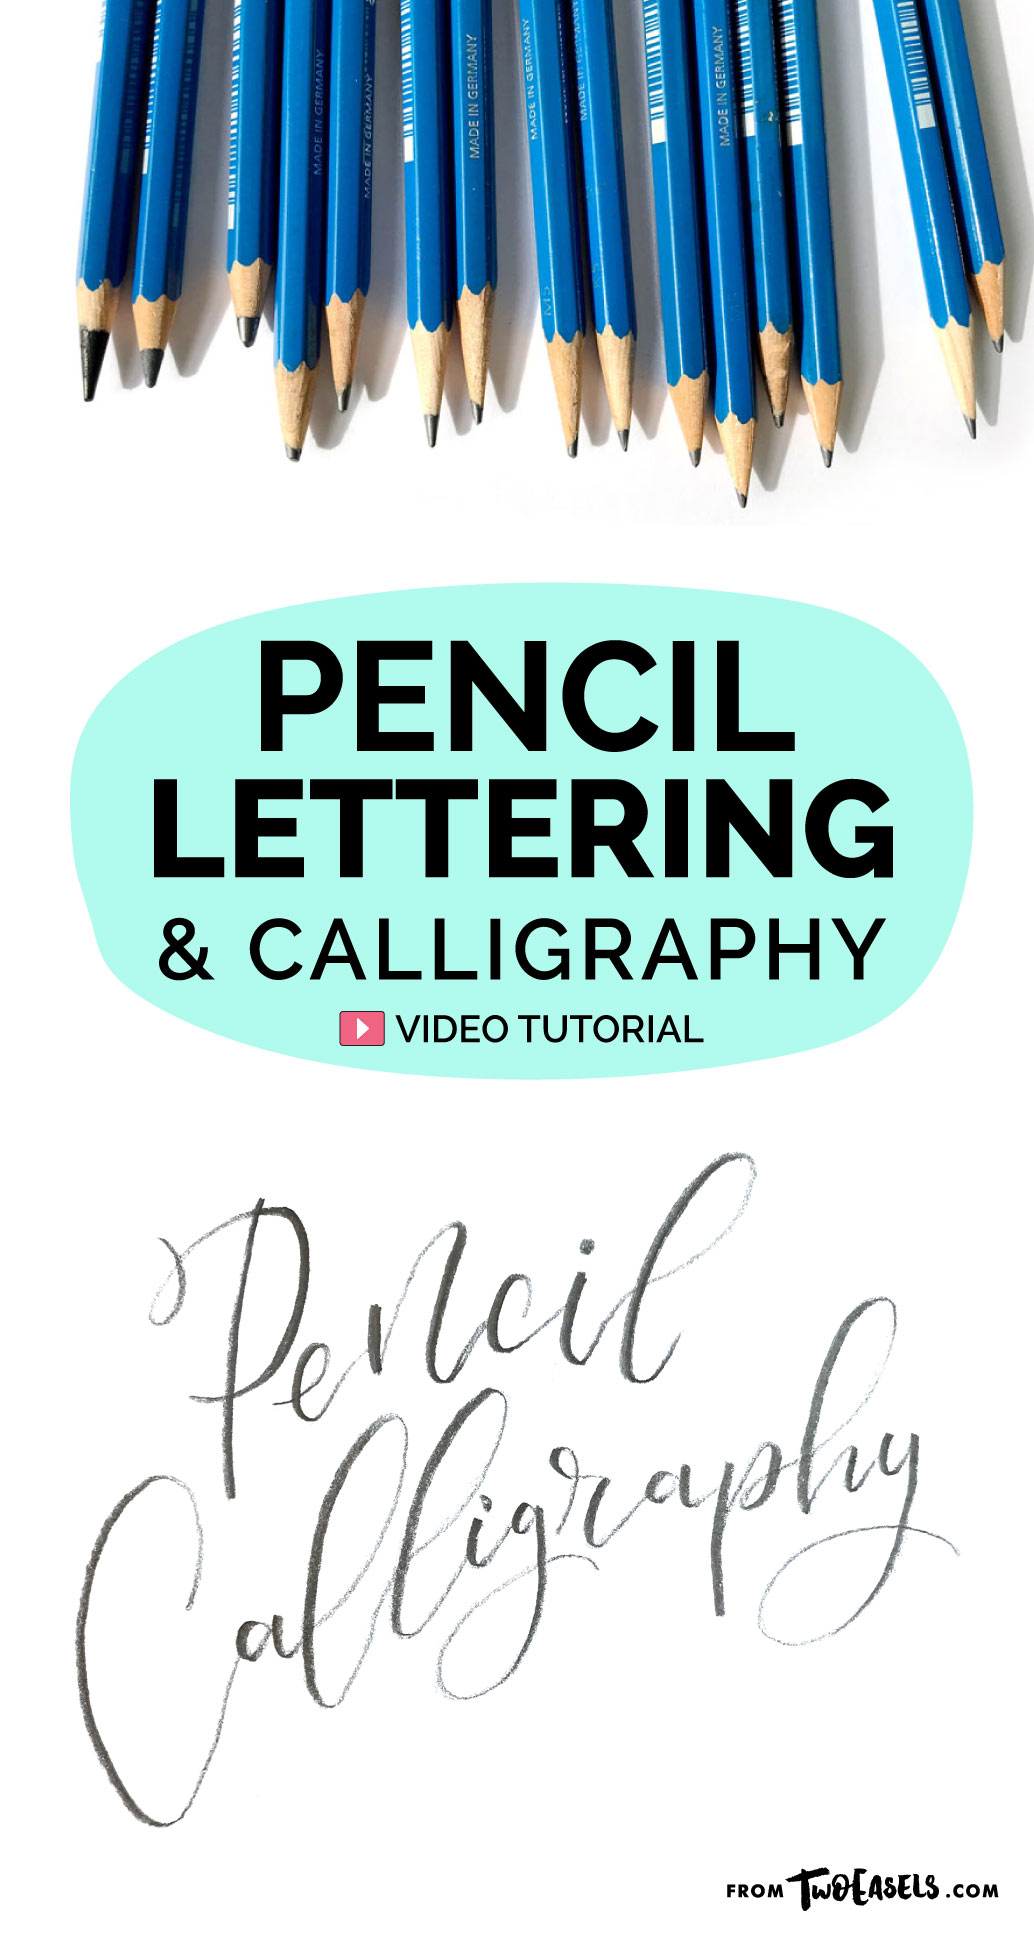 Yes, it's possible to do modern calligraphy with just a pencil, and it still looks amazing. Try it, or just use your pencil to sketch out your ideas. Etiher way, pencils and lettering go hand in hand.